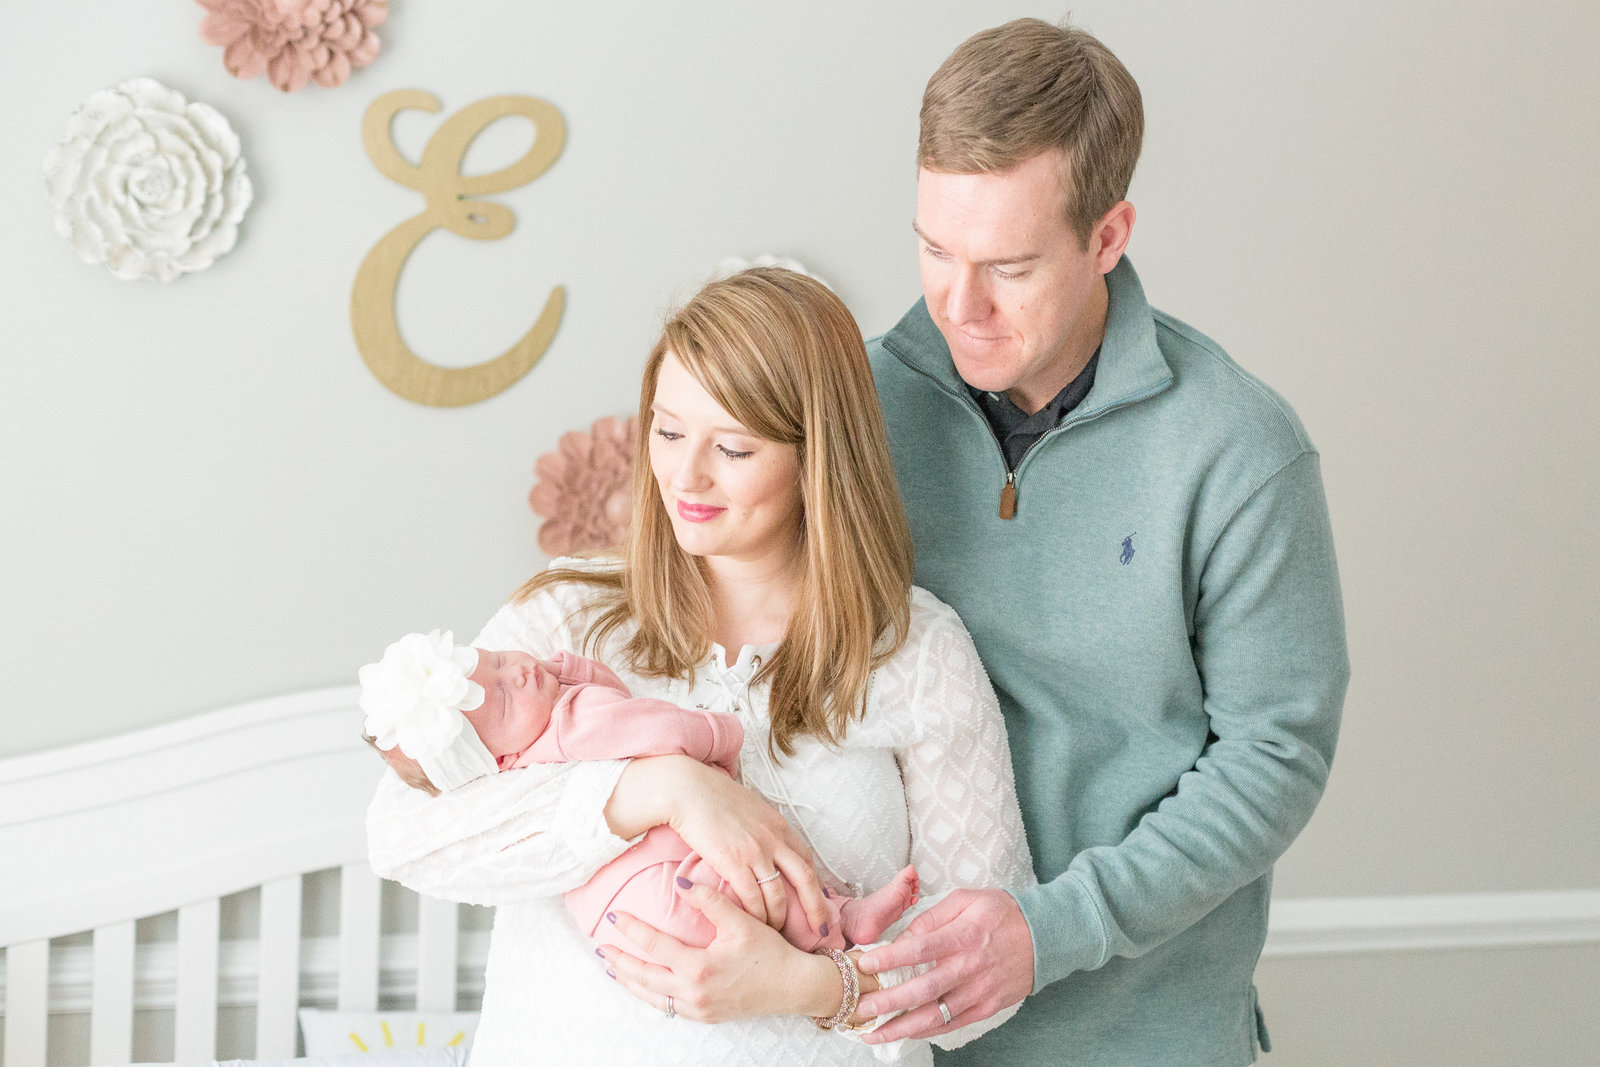 martin-family-lifestyle-in-home-newborn-baby-photo-session-010